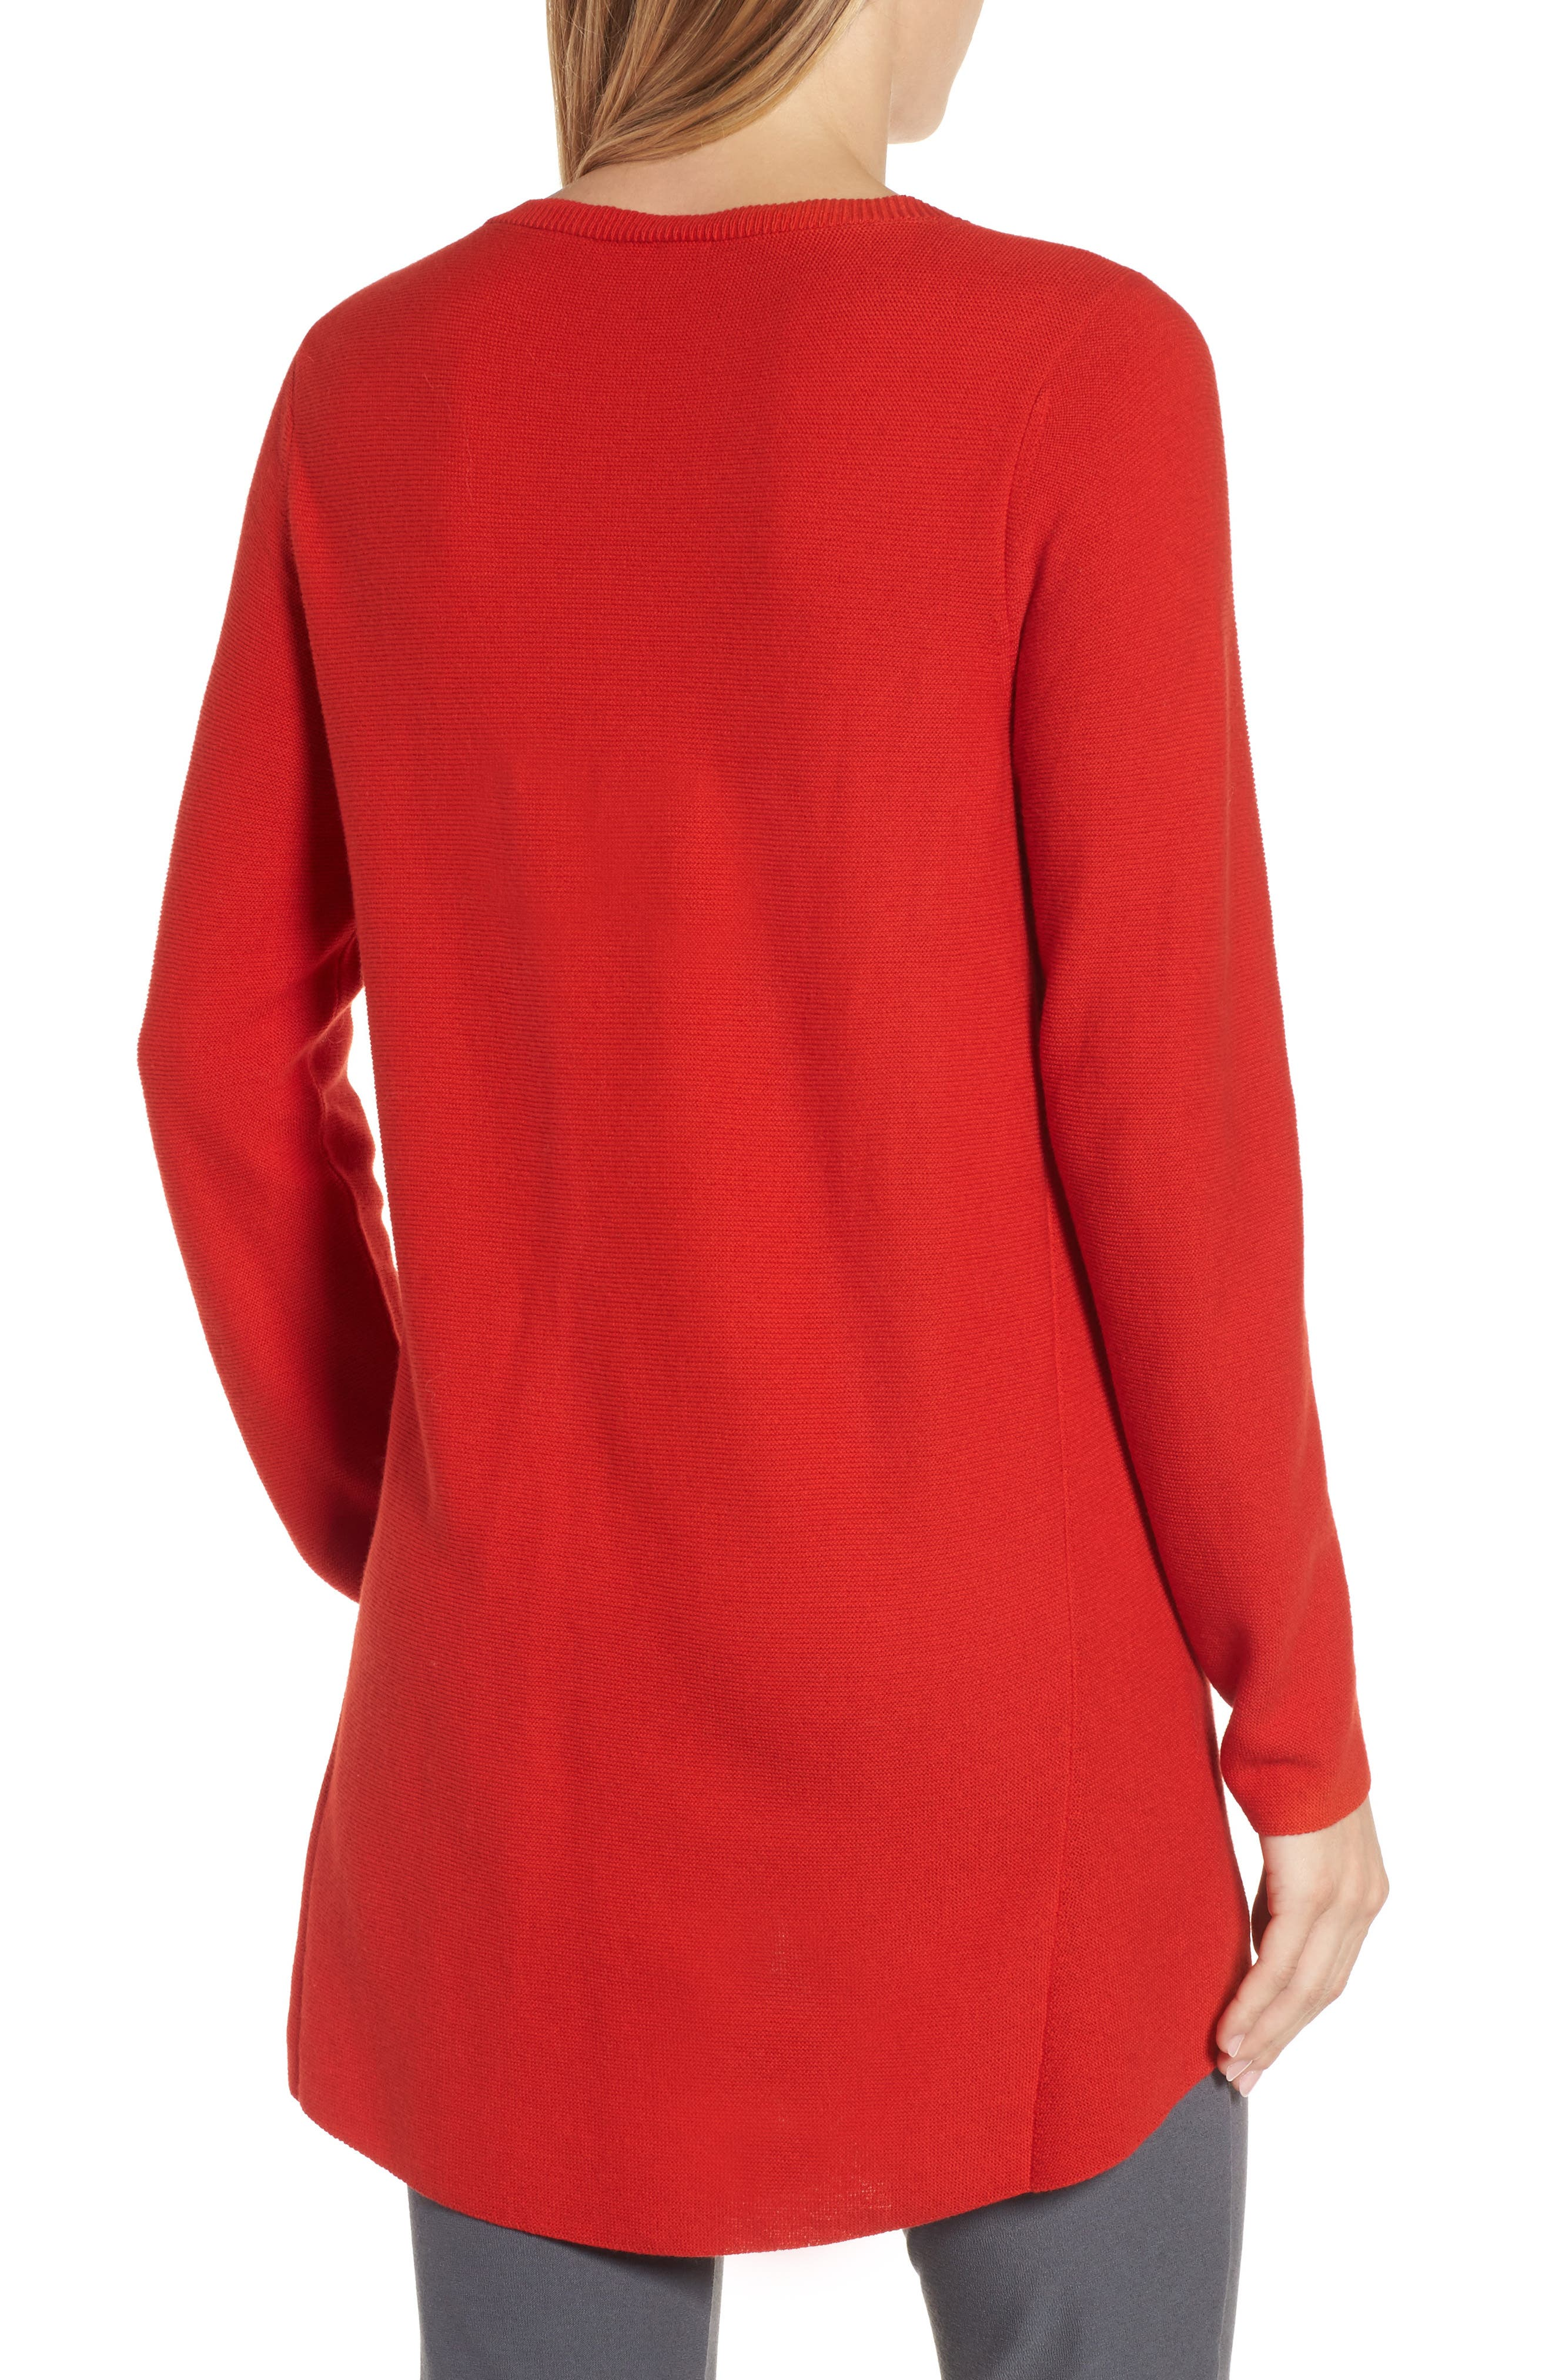 Organic Cotton Tunic Sweater,                             Alternate thumbnail 6, color,